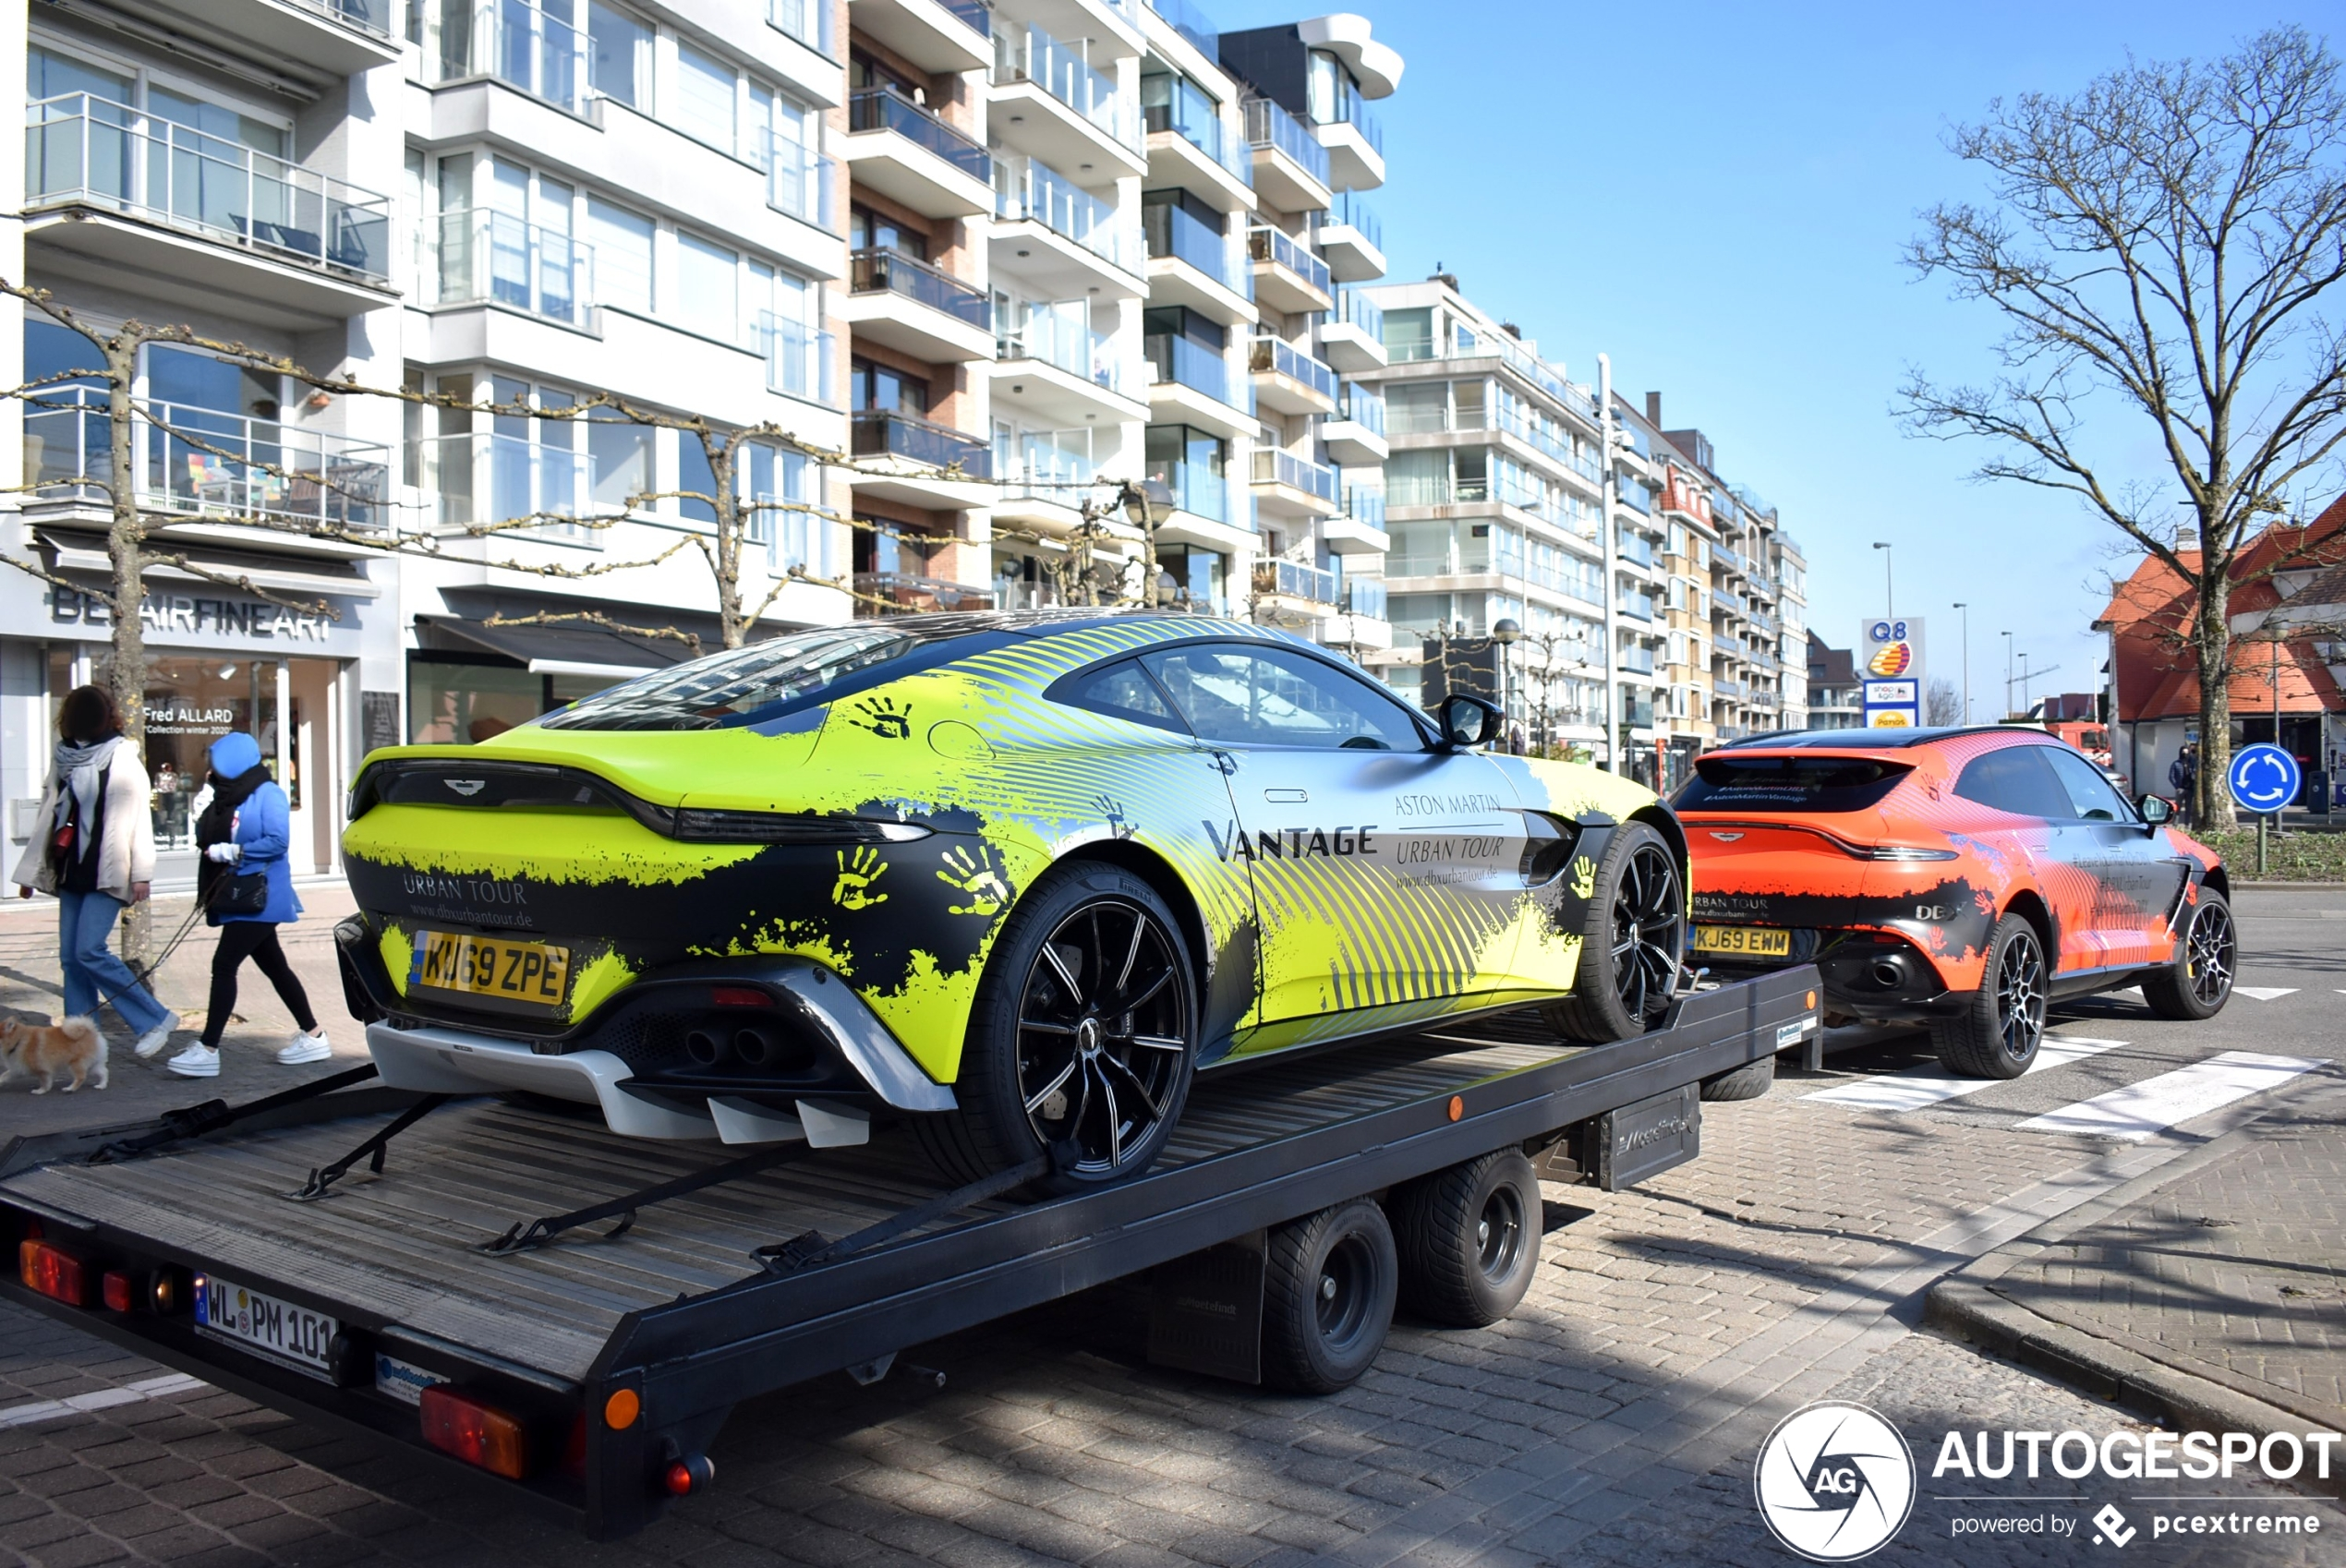 Aston Martin DBX shows Knokke-Heist its possibilities